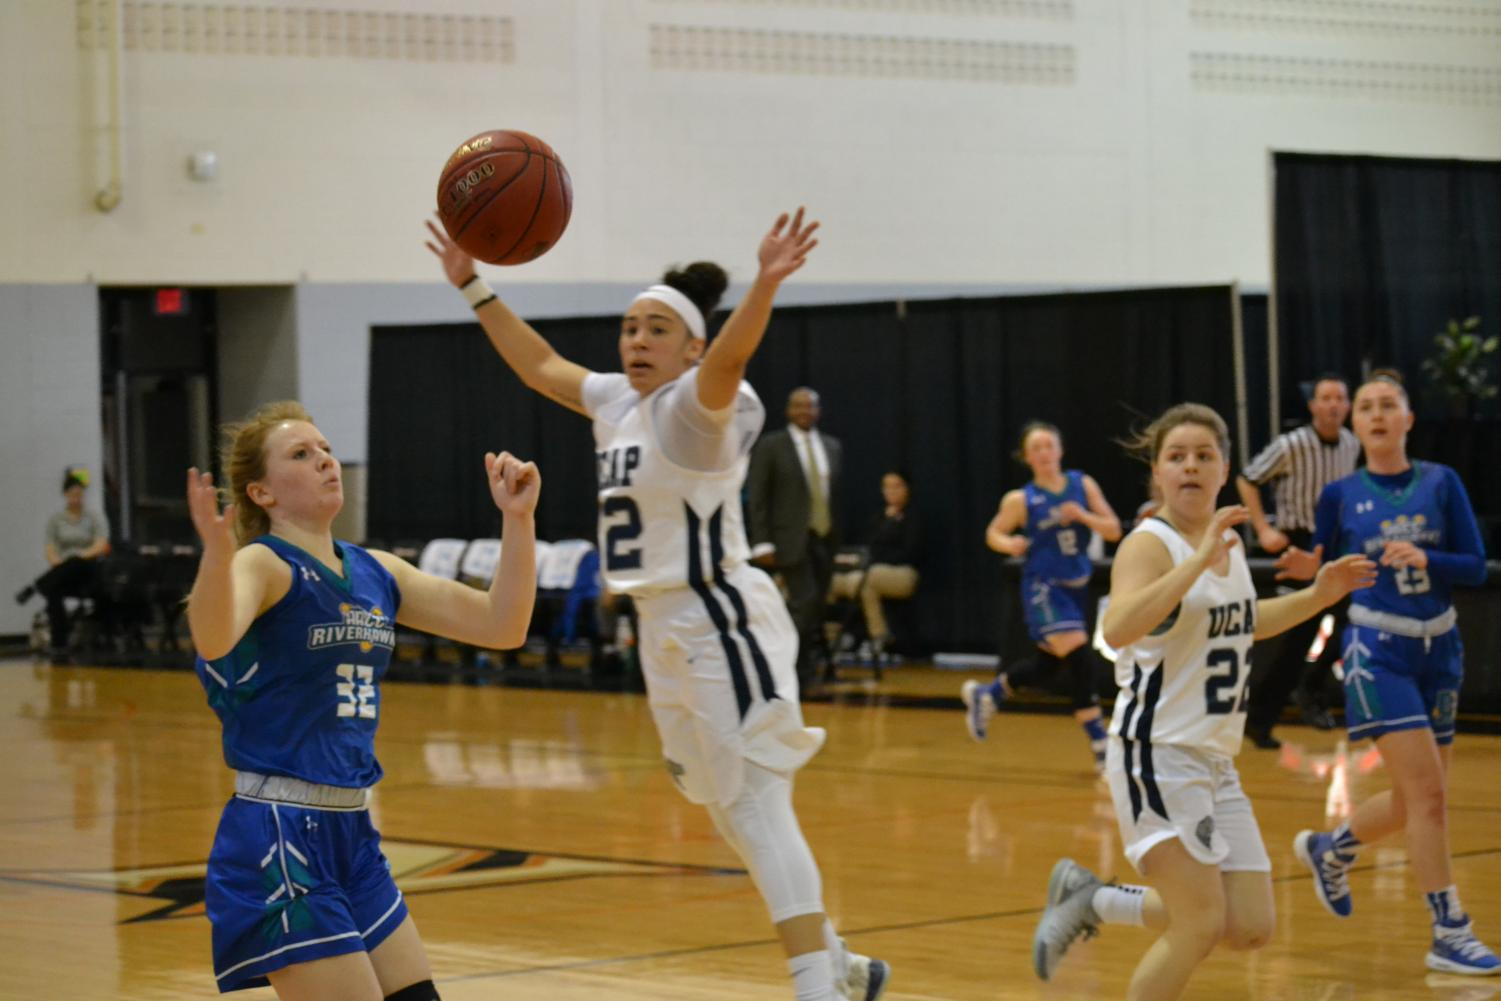 Riverhawks forward Lacey Hinkle goes for the ball in the team's final game at nationals.